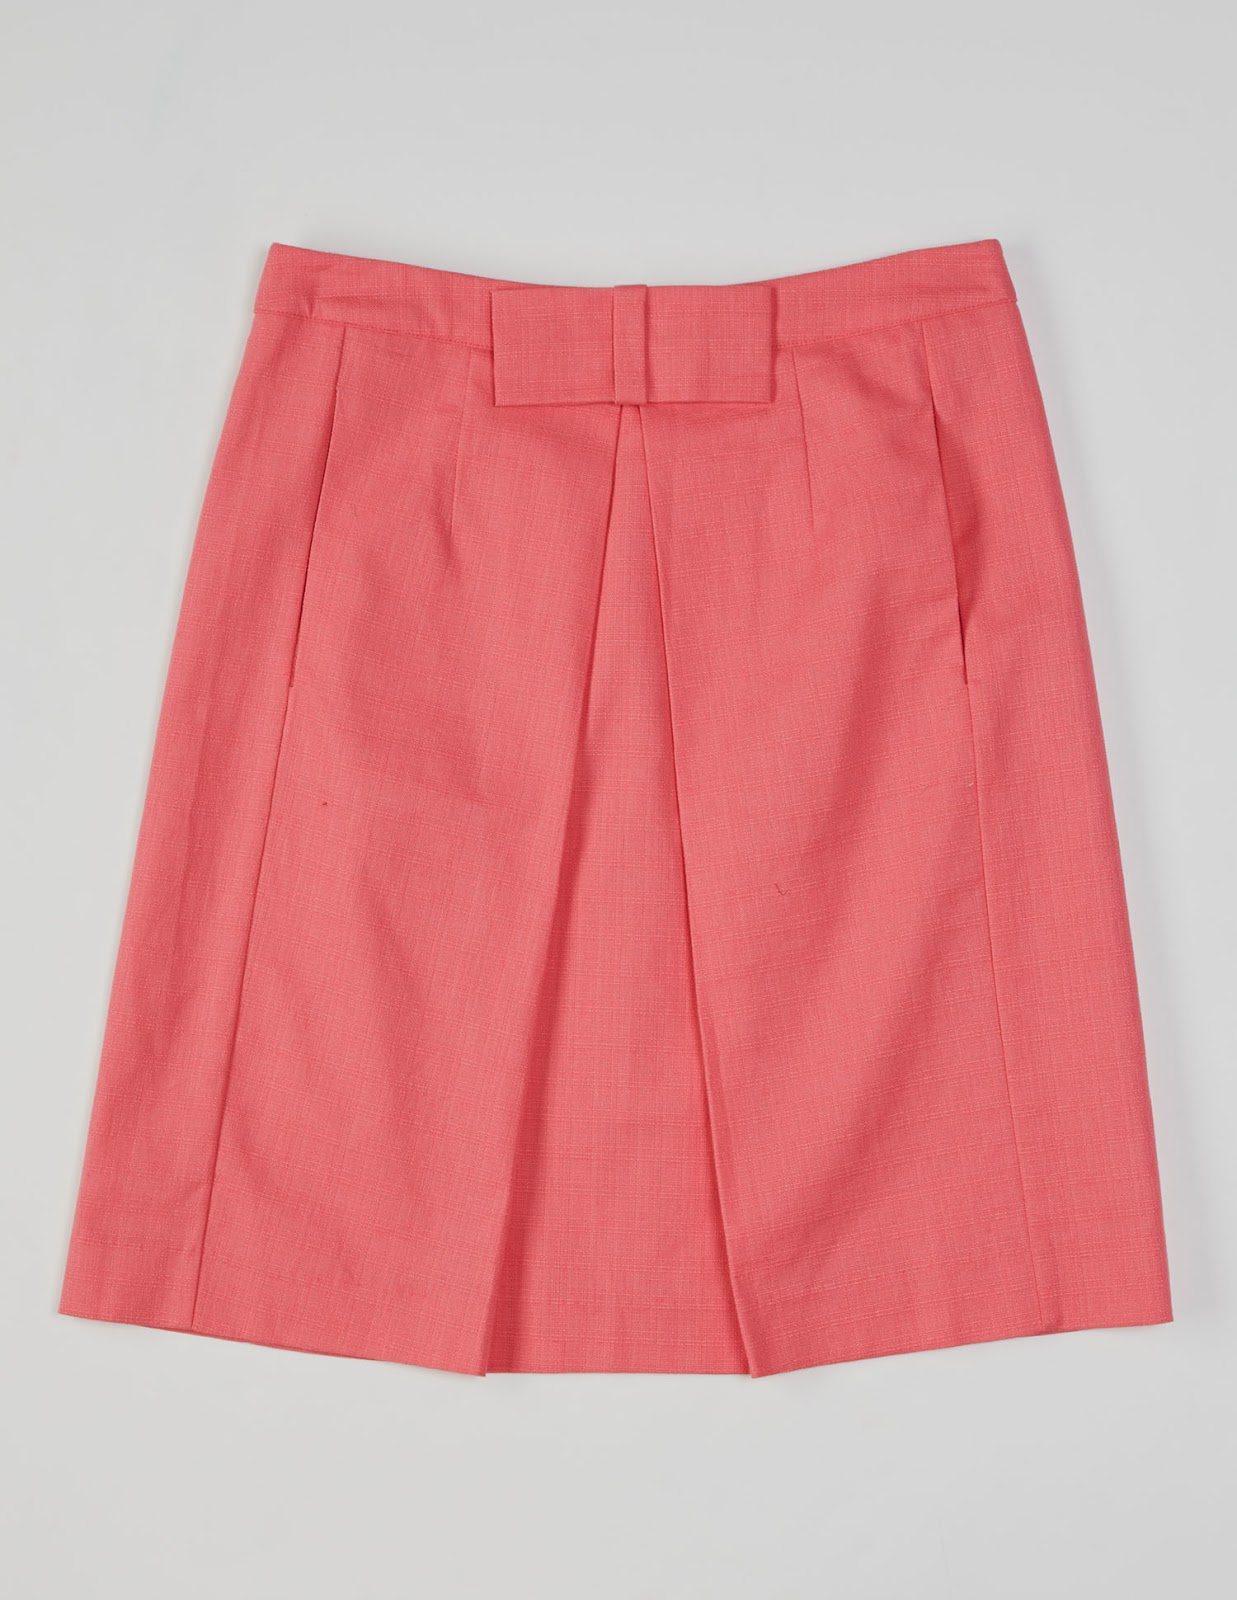 My superfluities boden spring 2015 preview picks for Boden mid season sale 2015